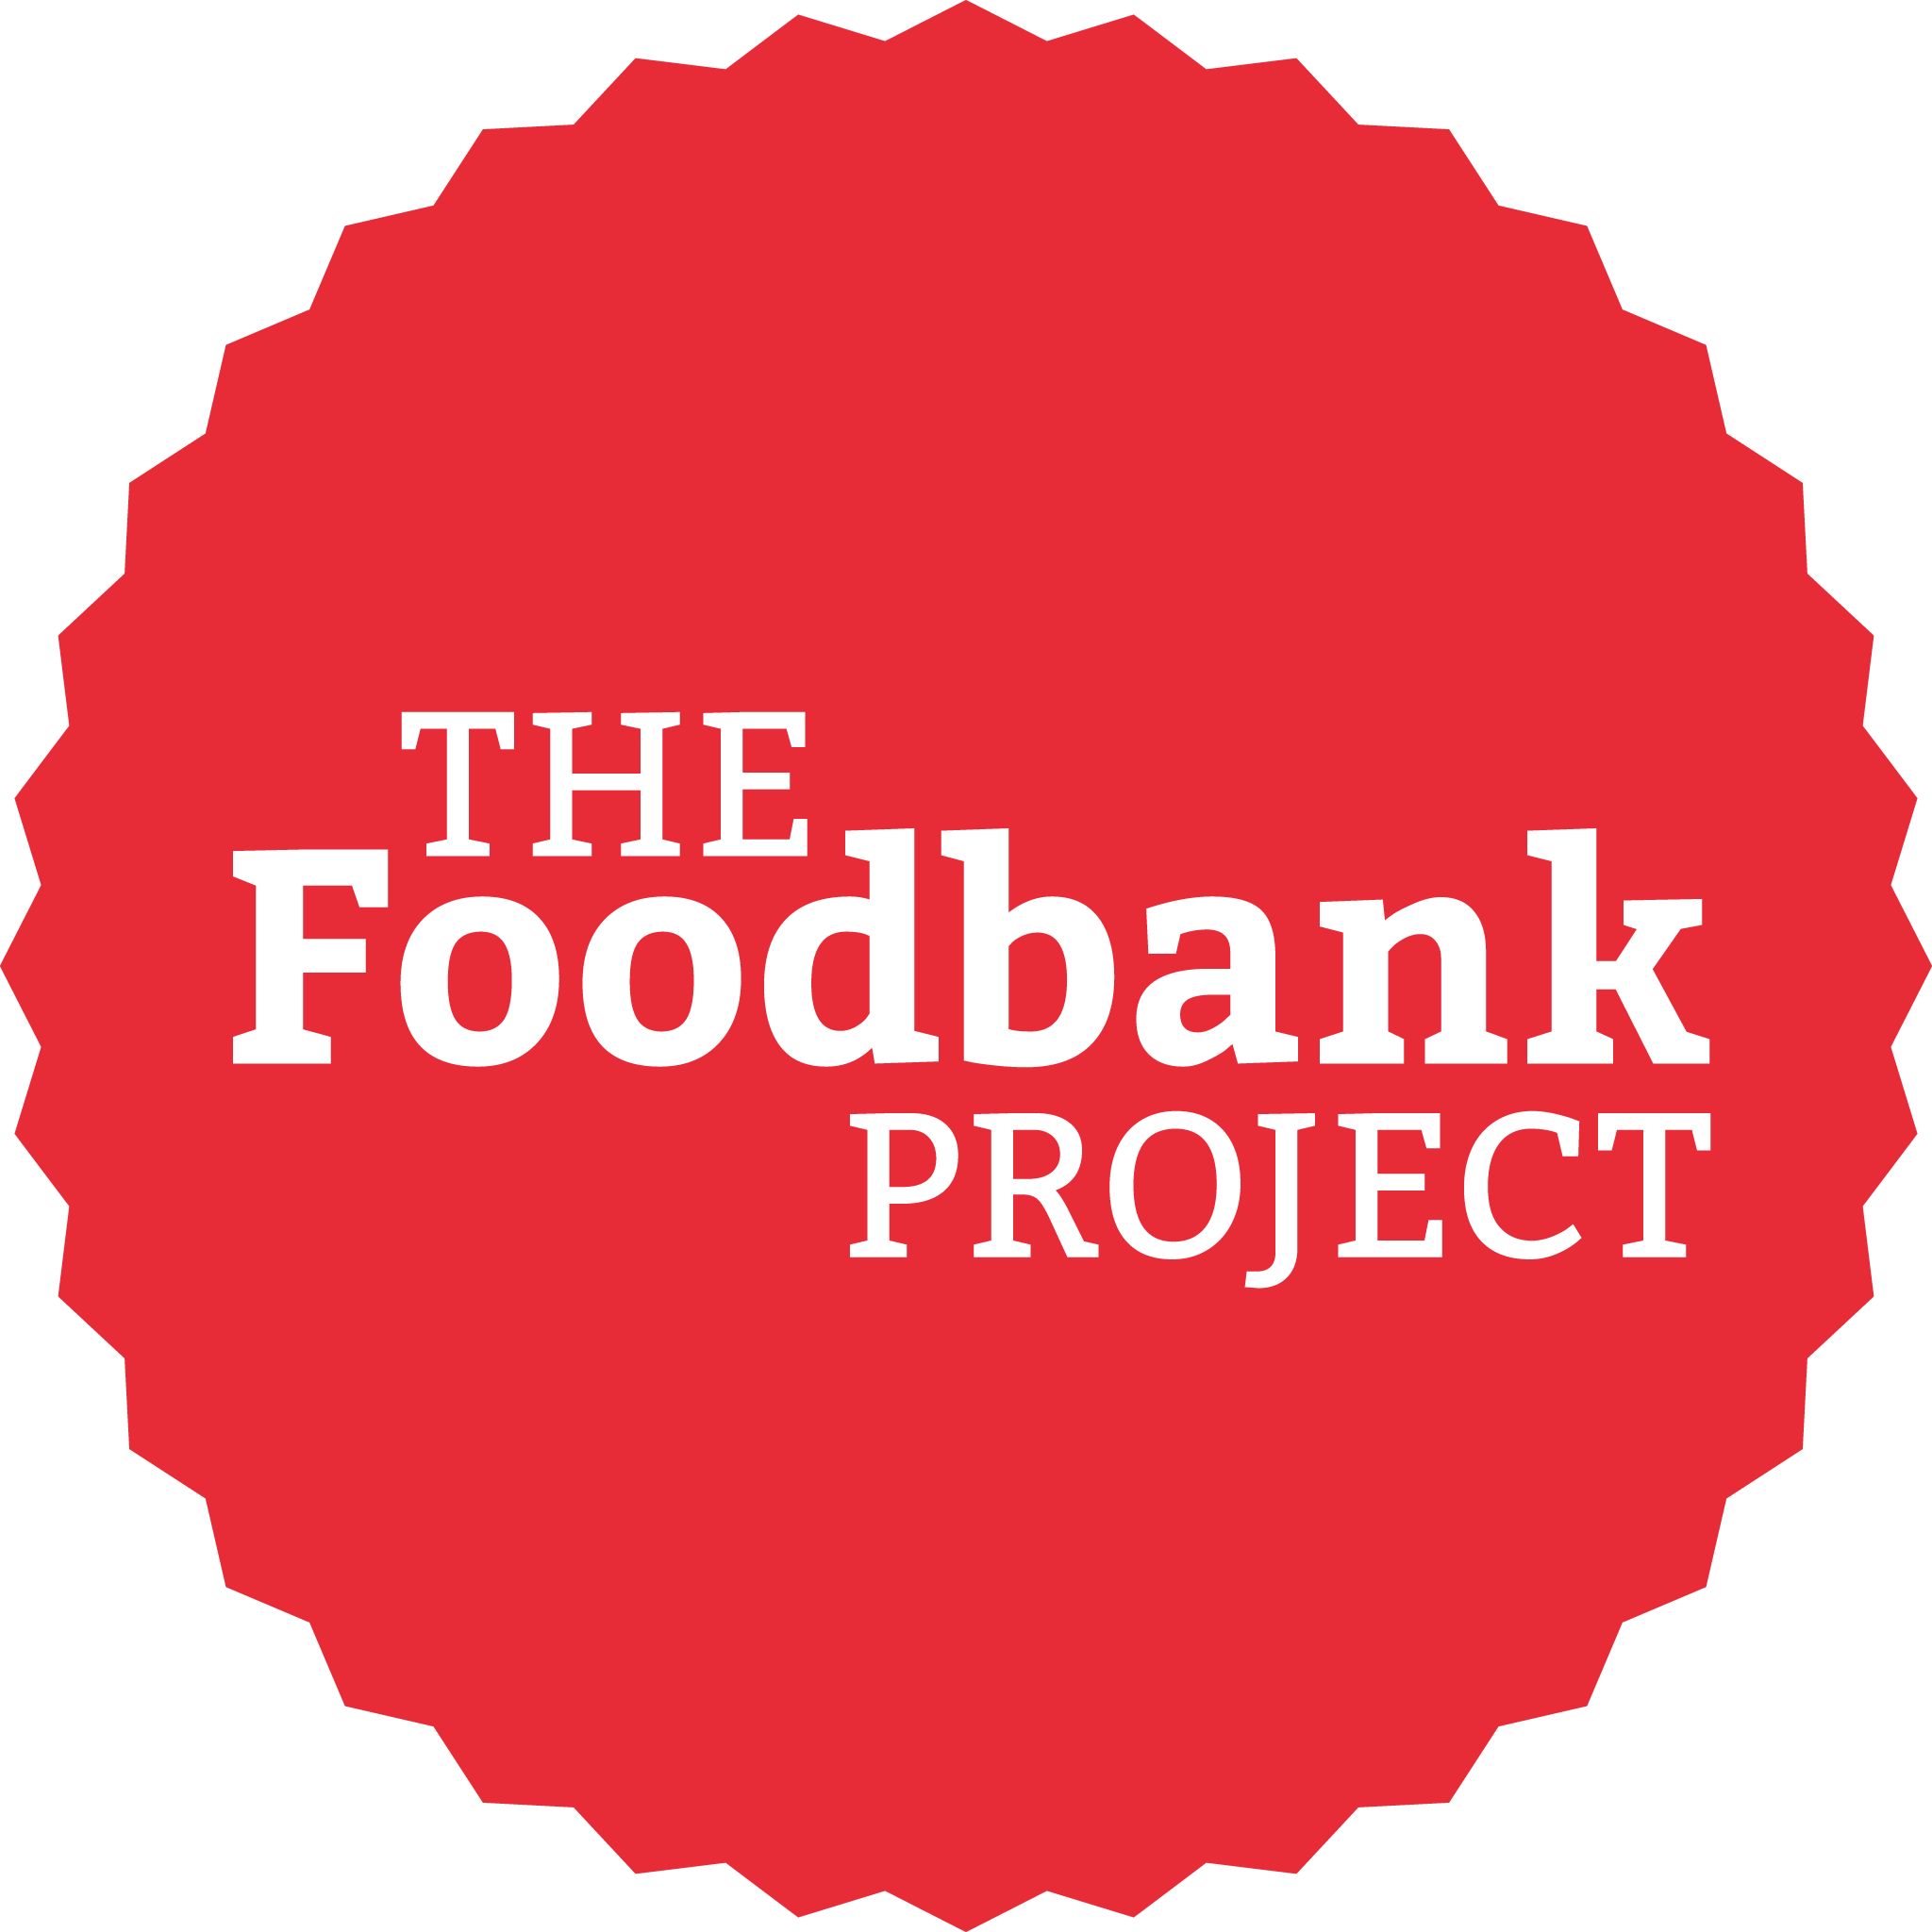 The Foodbank Project